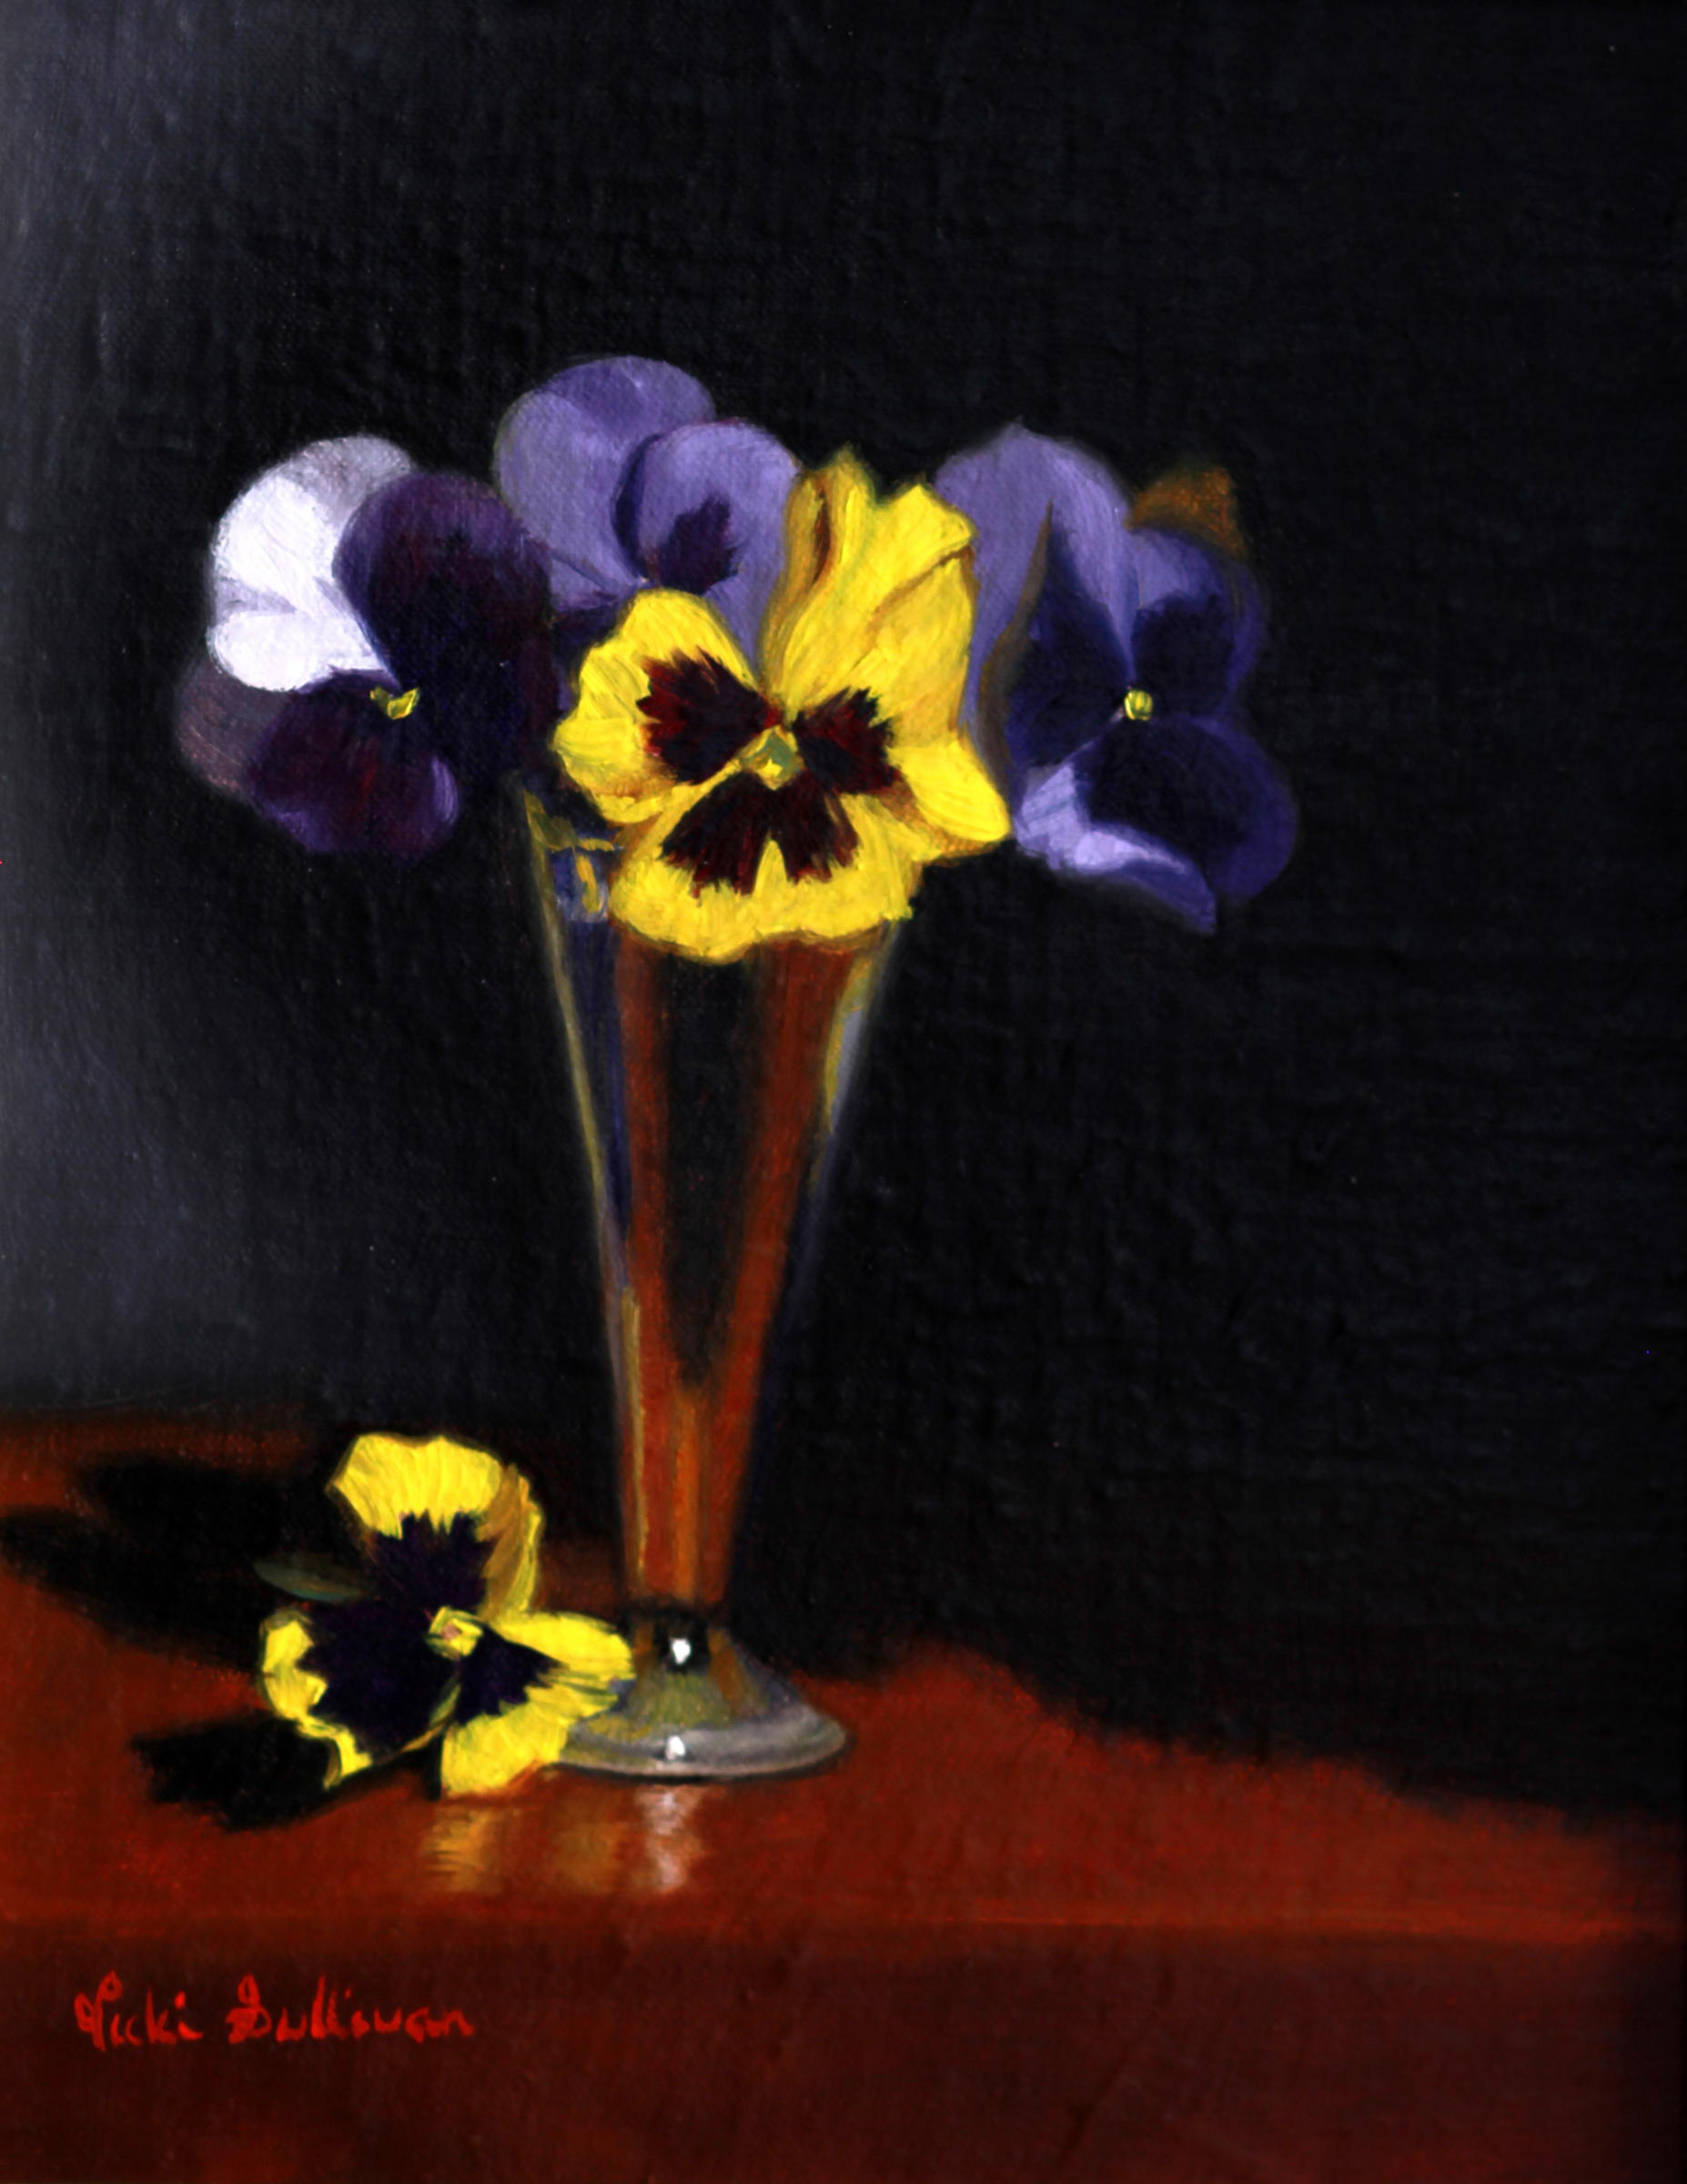 Title:Pansy Study, Medium: oil on linen, Size: h 30cm x w 25cm, available